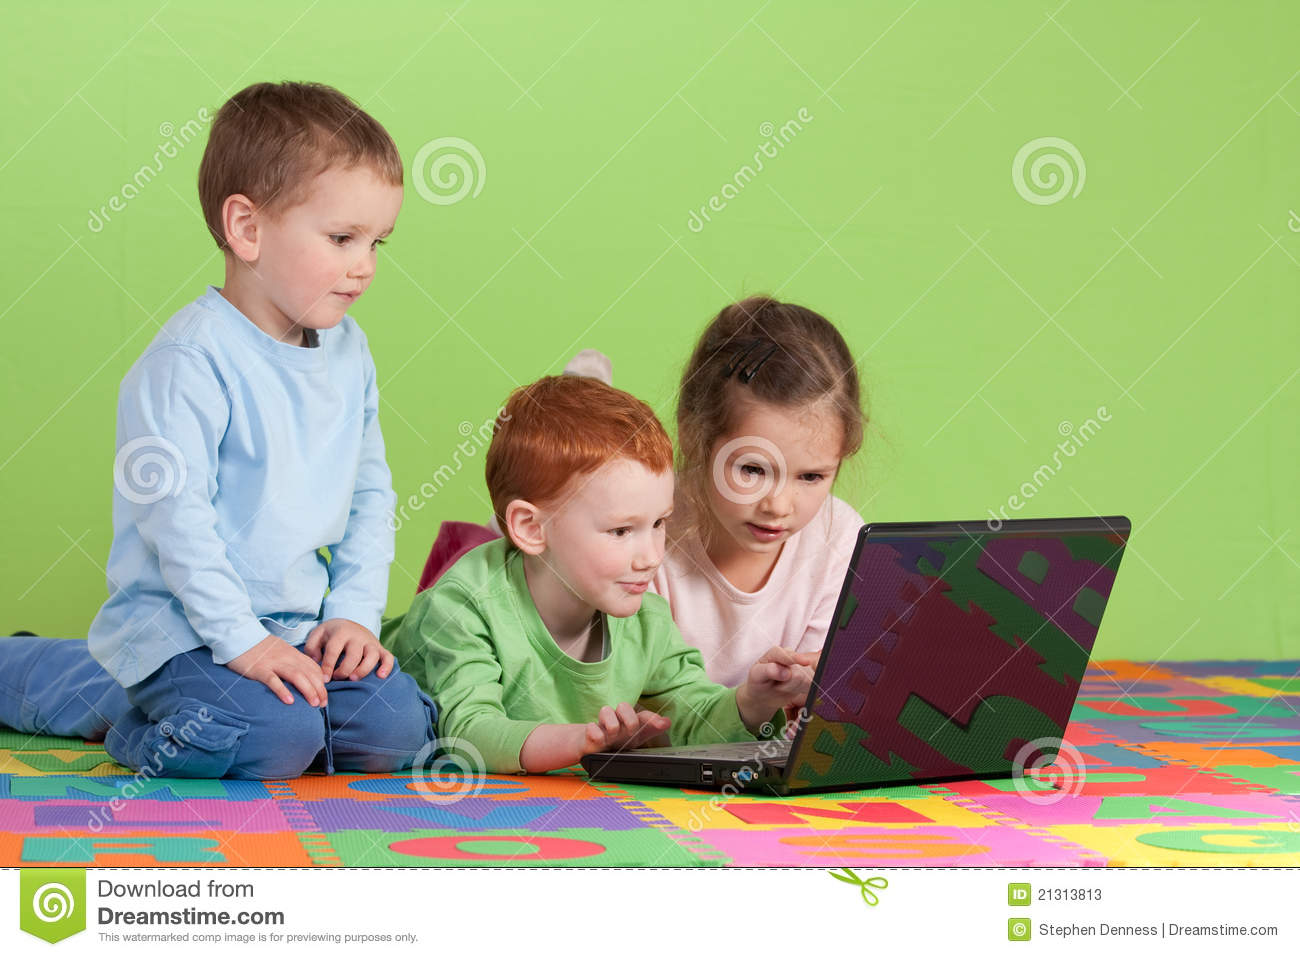 Worksheet Learning With Kids children learning with kids letters and computer royalty free group of on stock photos